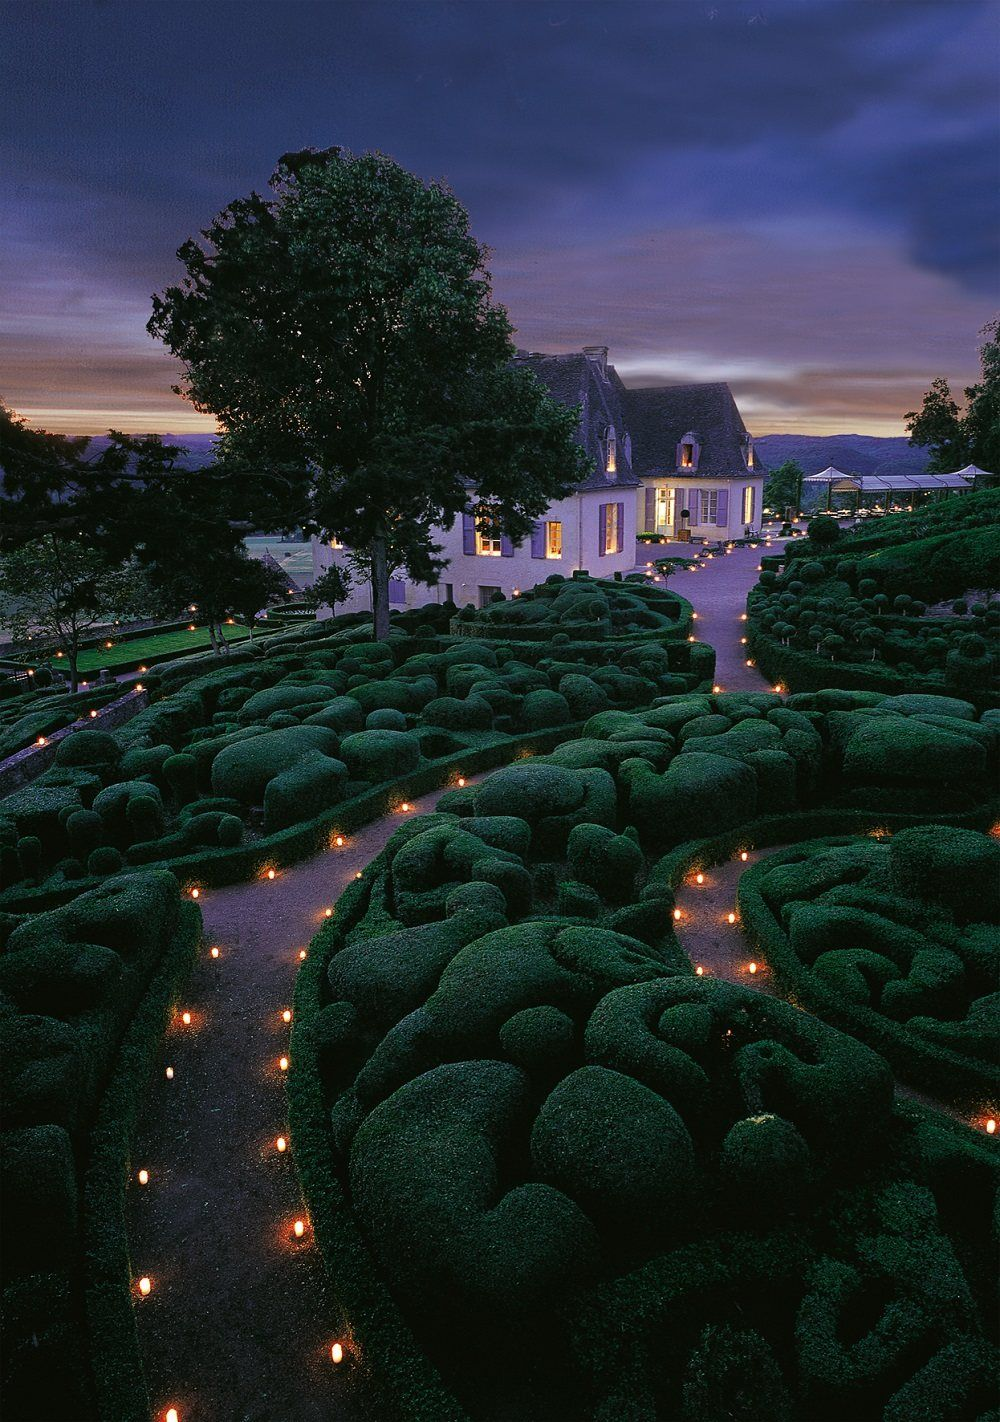 Gardens lit by candles